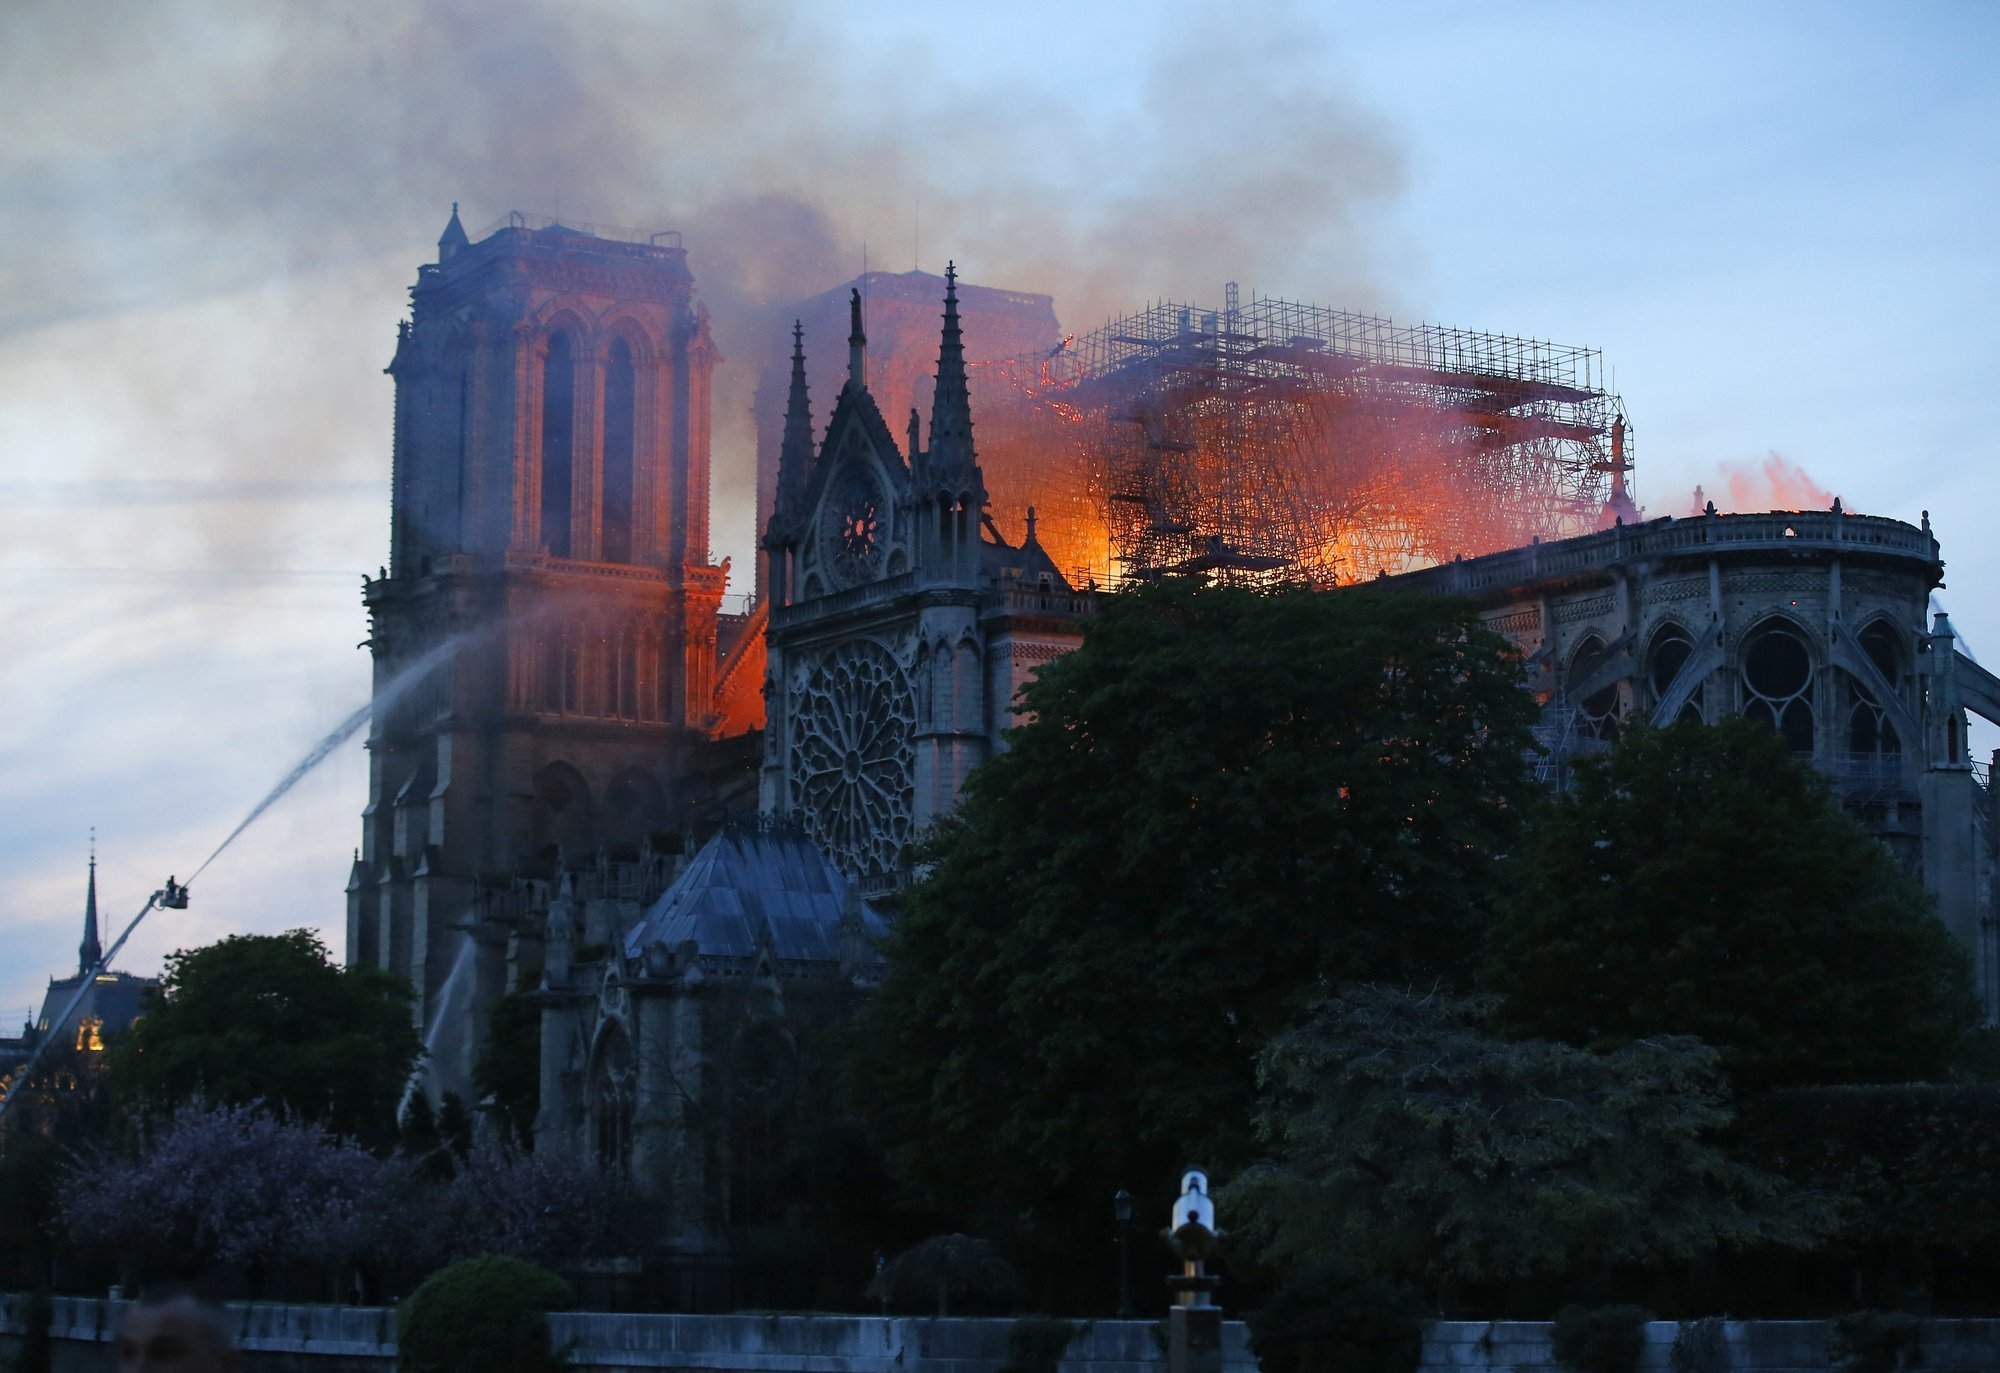 A firefighter tackles the blaze as flames and smoke rise from Notre-Dame cathedral as it burns in Paris. — AP